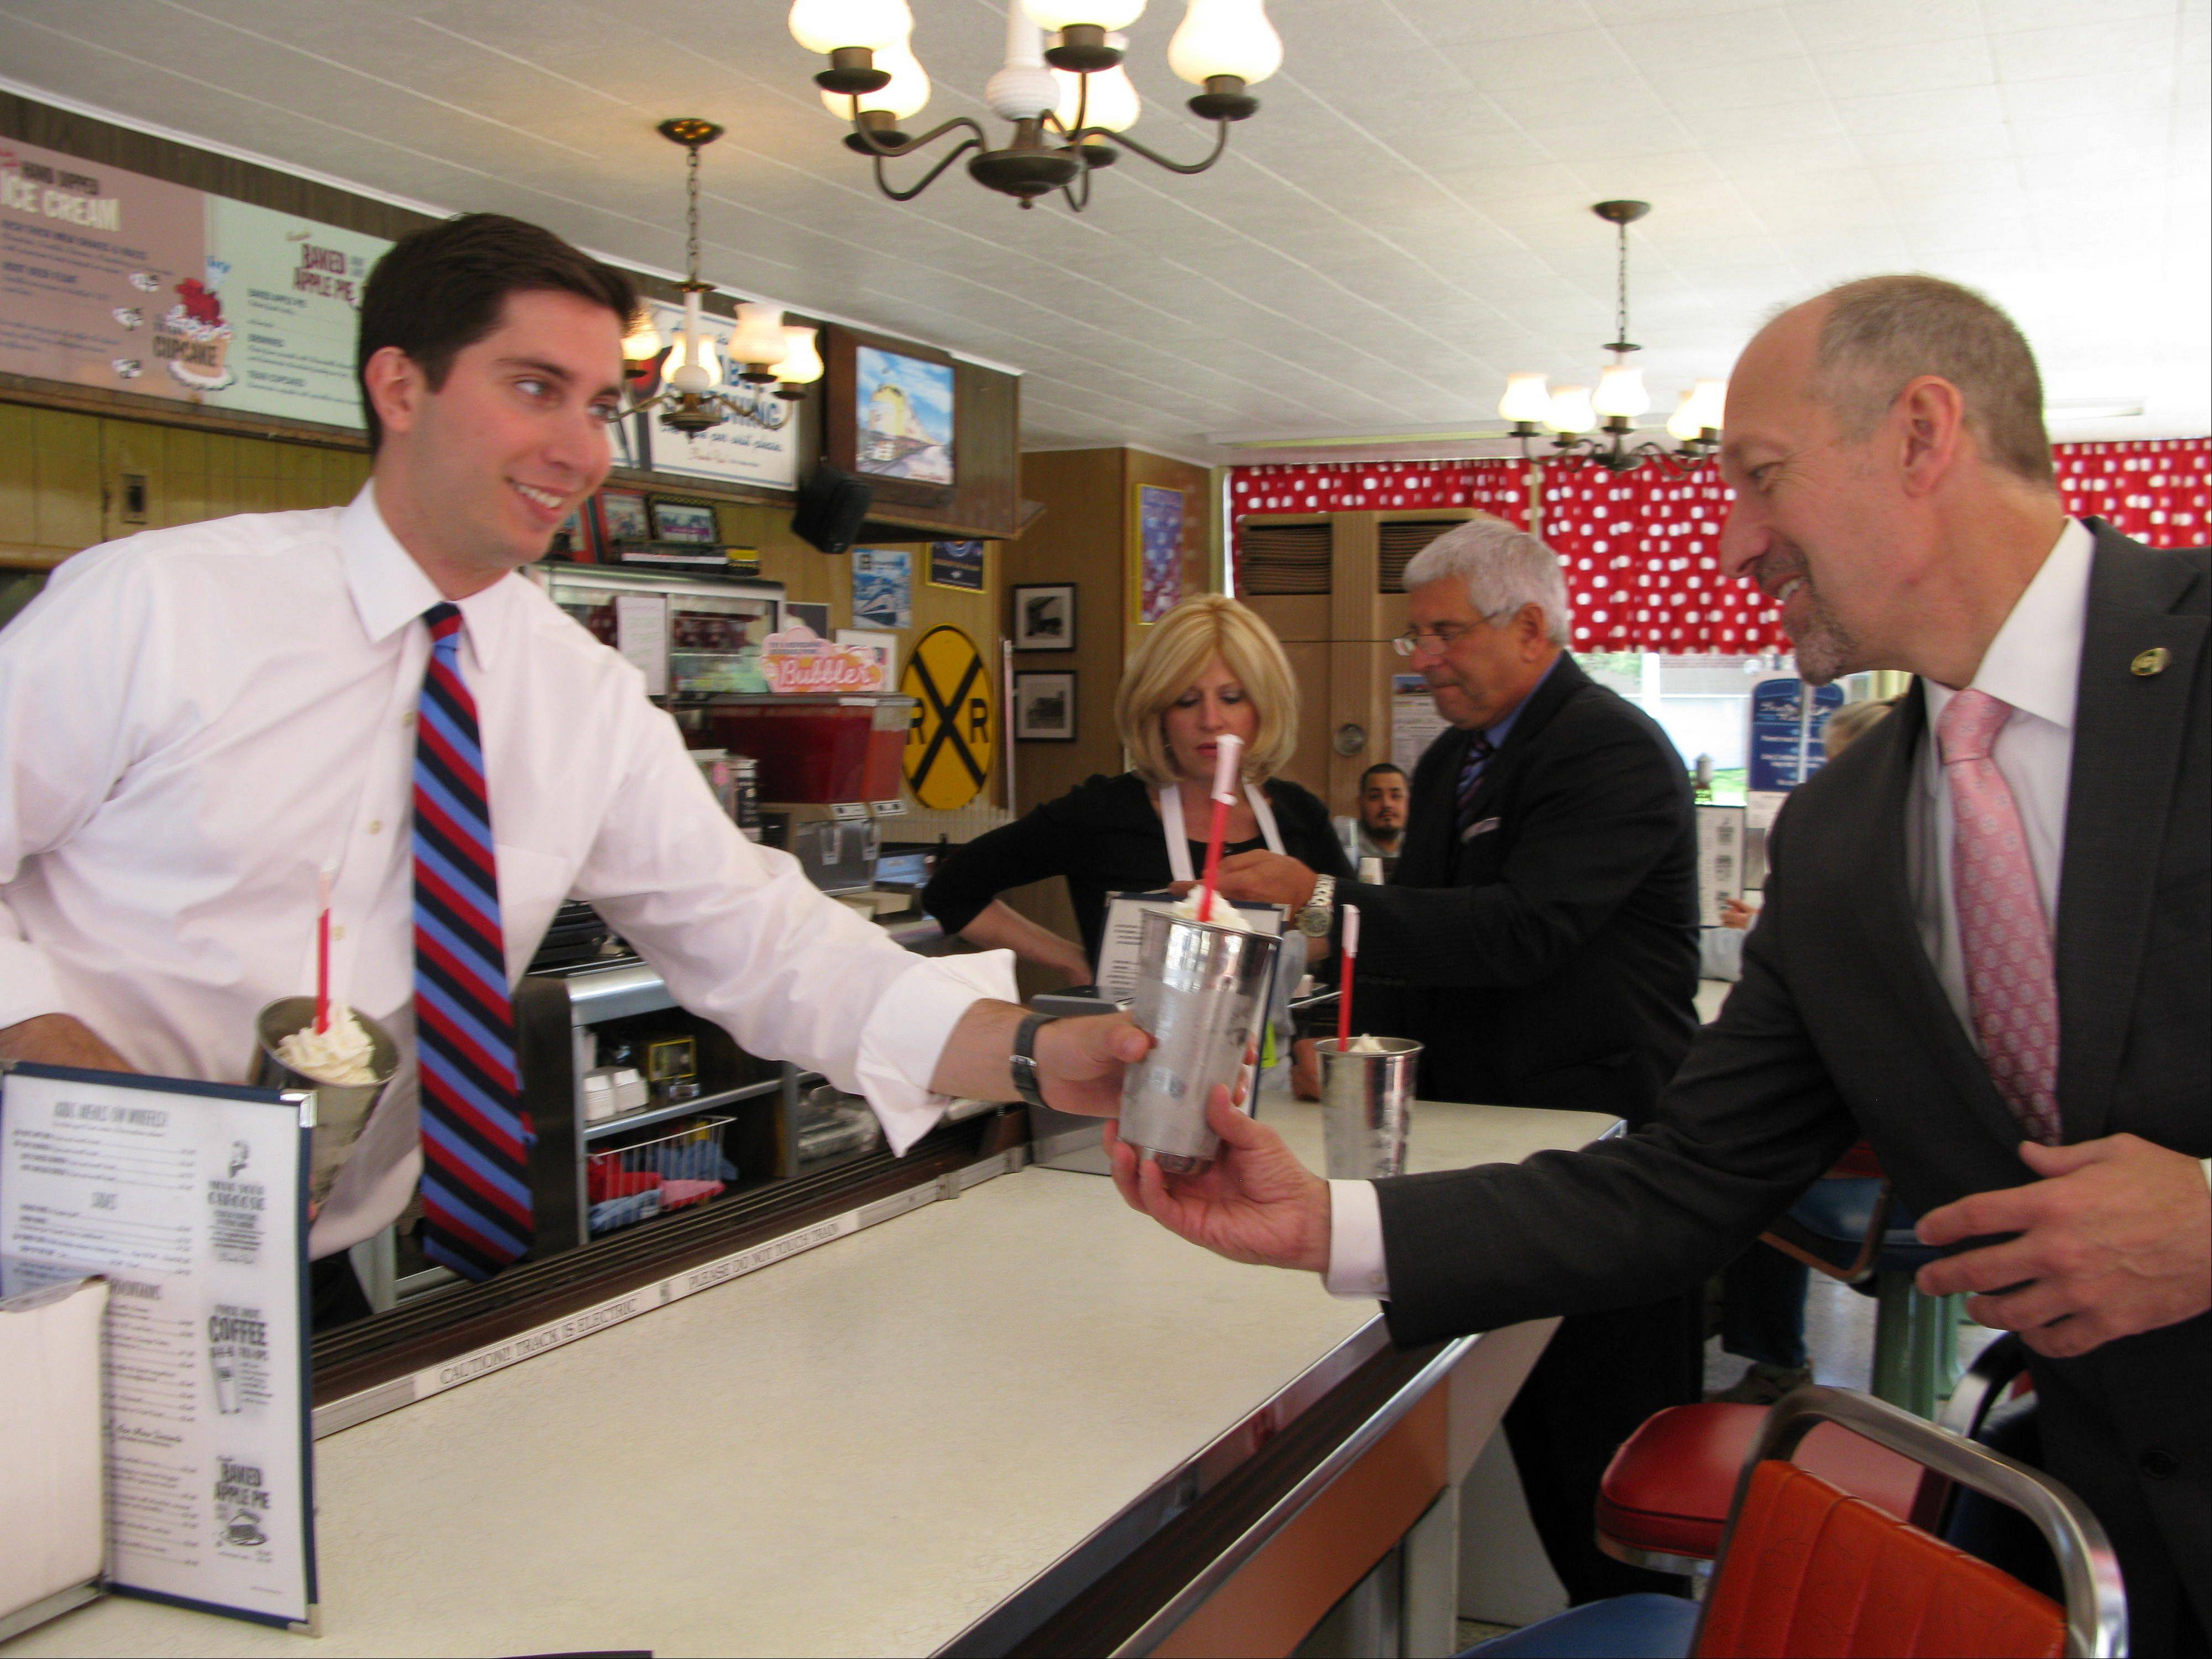 Des Plaines Mayor Matt Bogusz, left, serves up a famous Choo-Choo milkshake to City Manager Mike Bartholomew, right, as Jim Ulett, chairman of the city's Economic Development Commission, talks to business owner Jean Paxton. It was the last stop on Bogusz's tour of local businesses on his first day on the job.